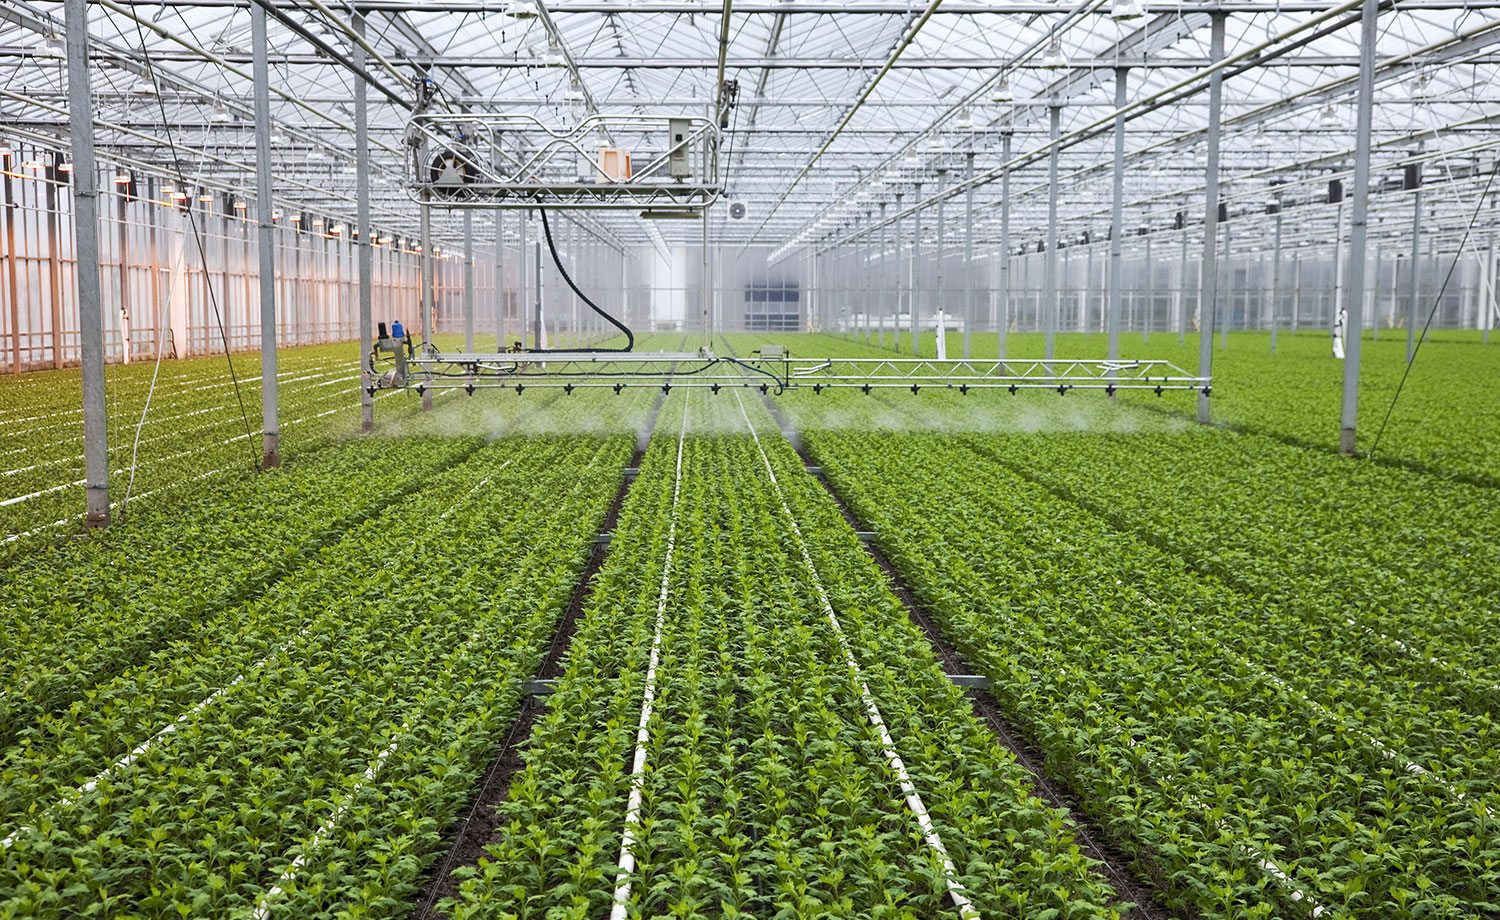 The interior of a large greenhouse.